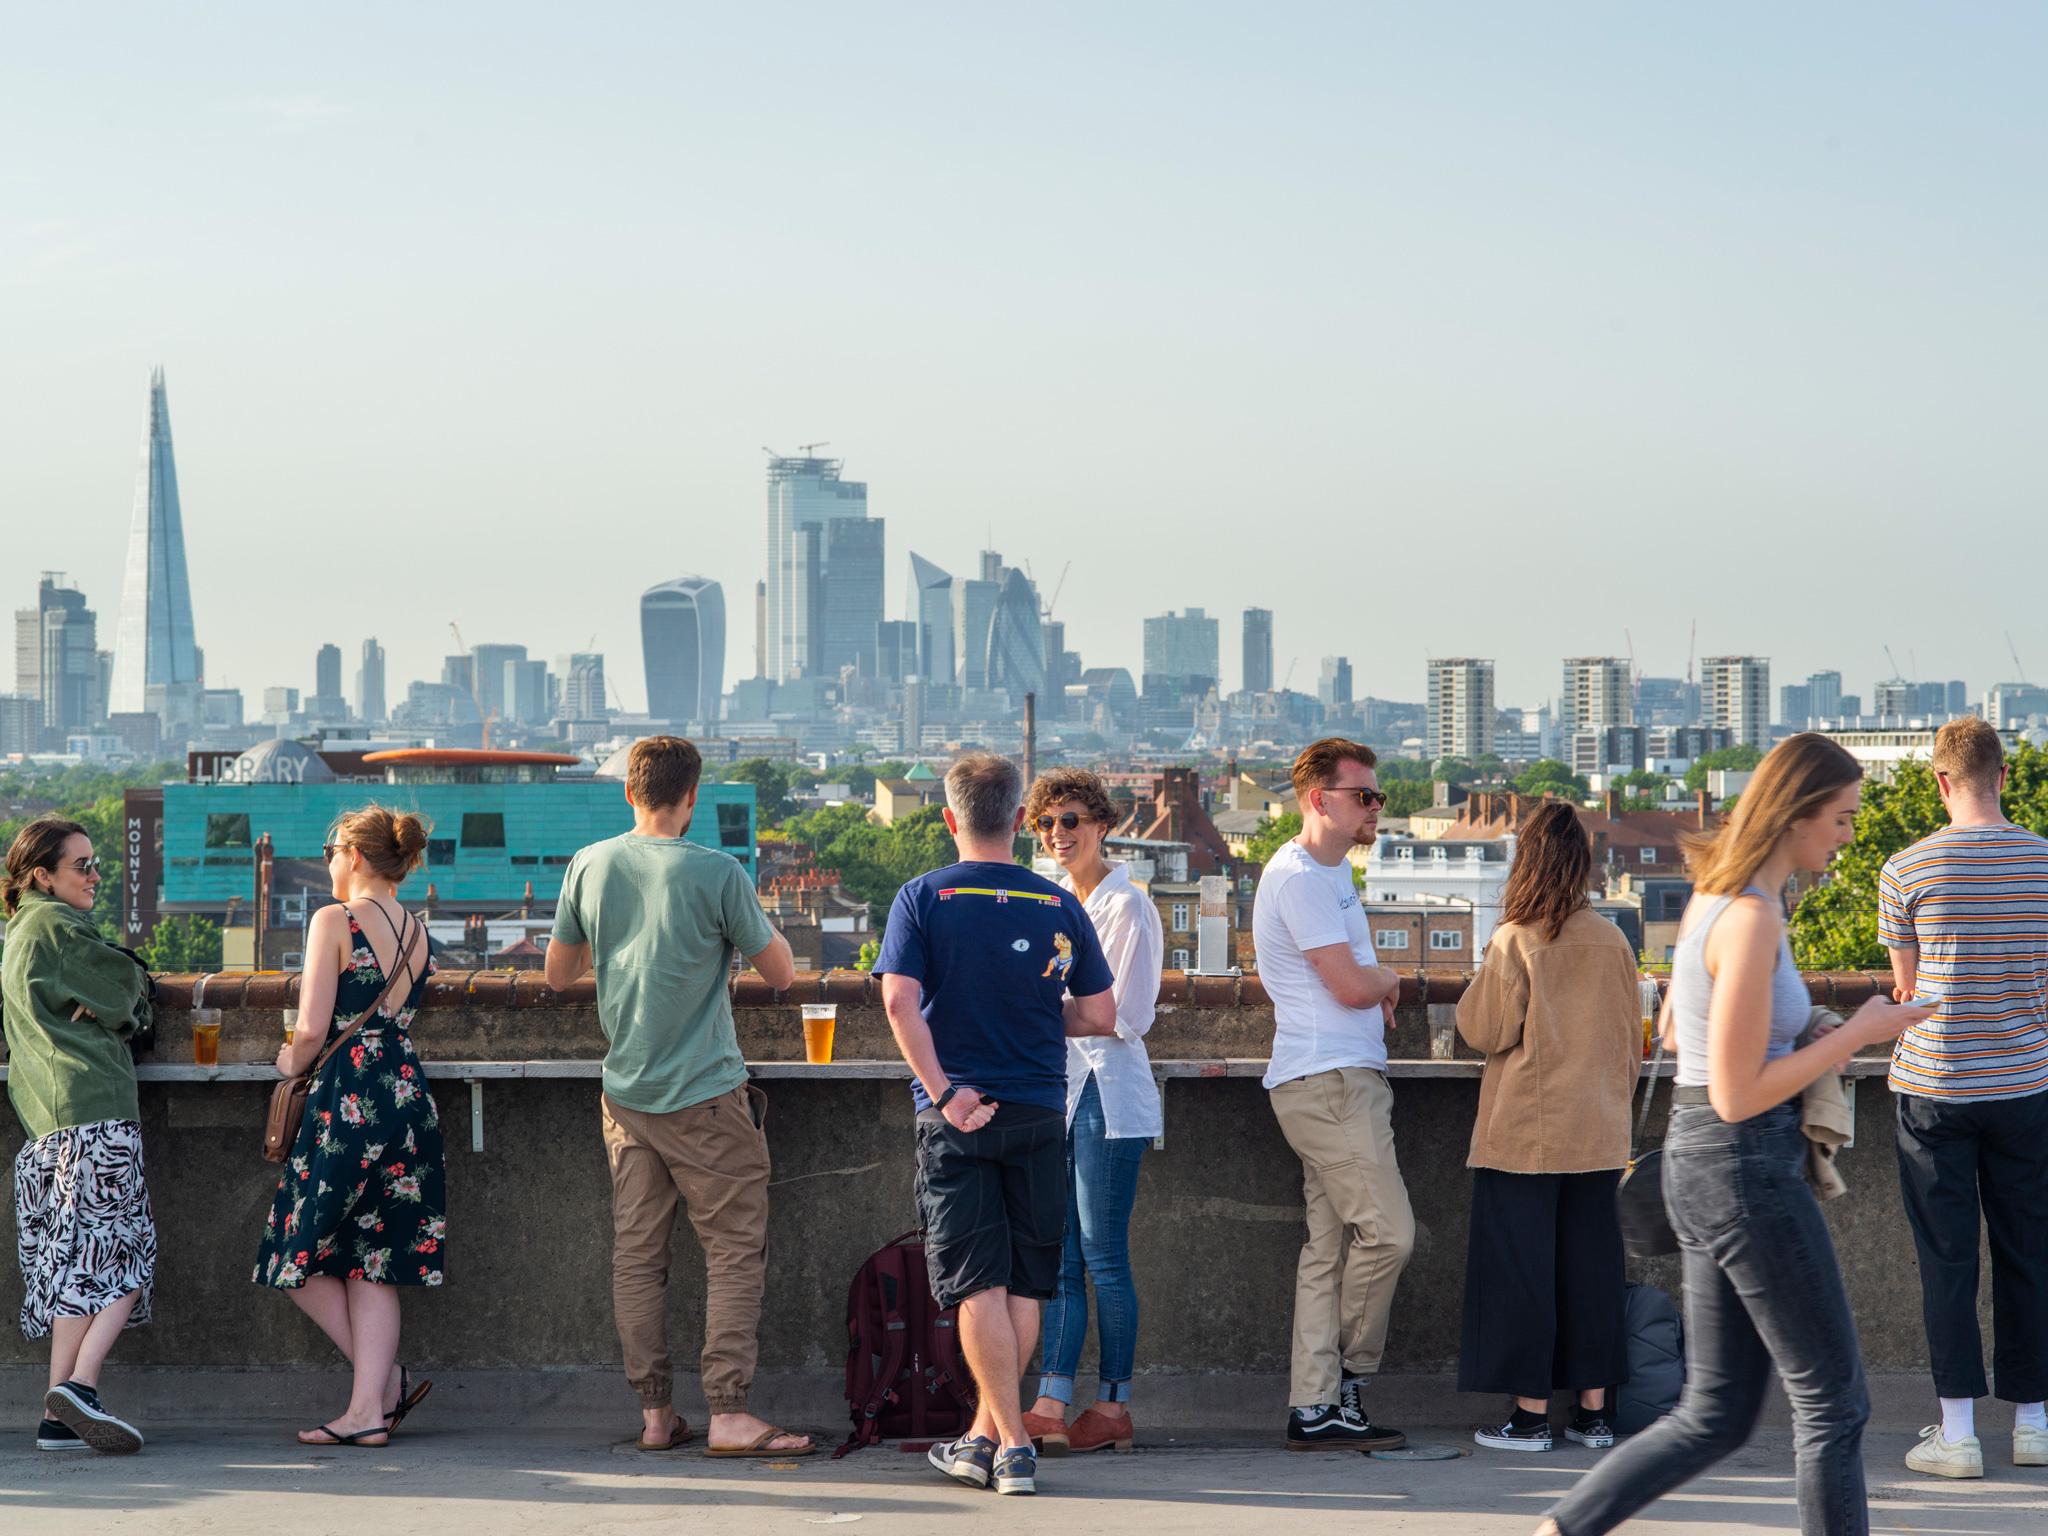 It's the last weekend of rooftop drinking at Frank's Café for the summer